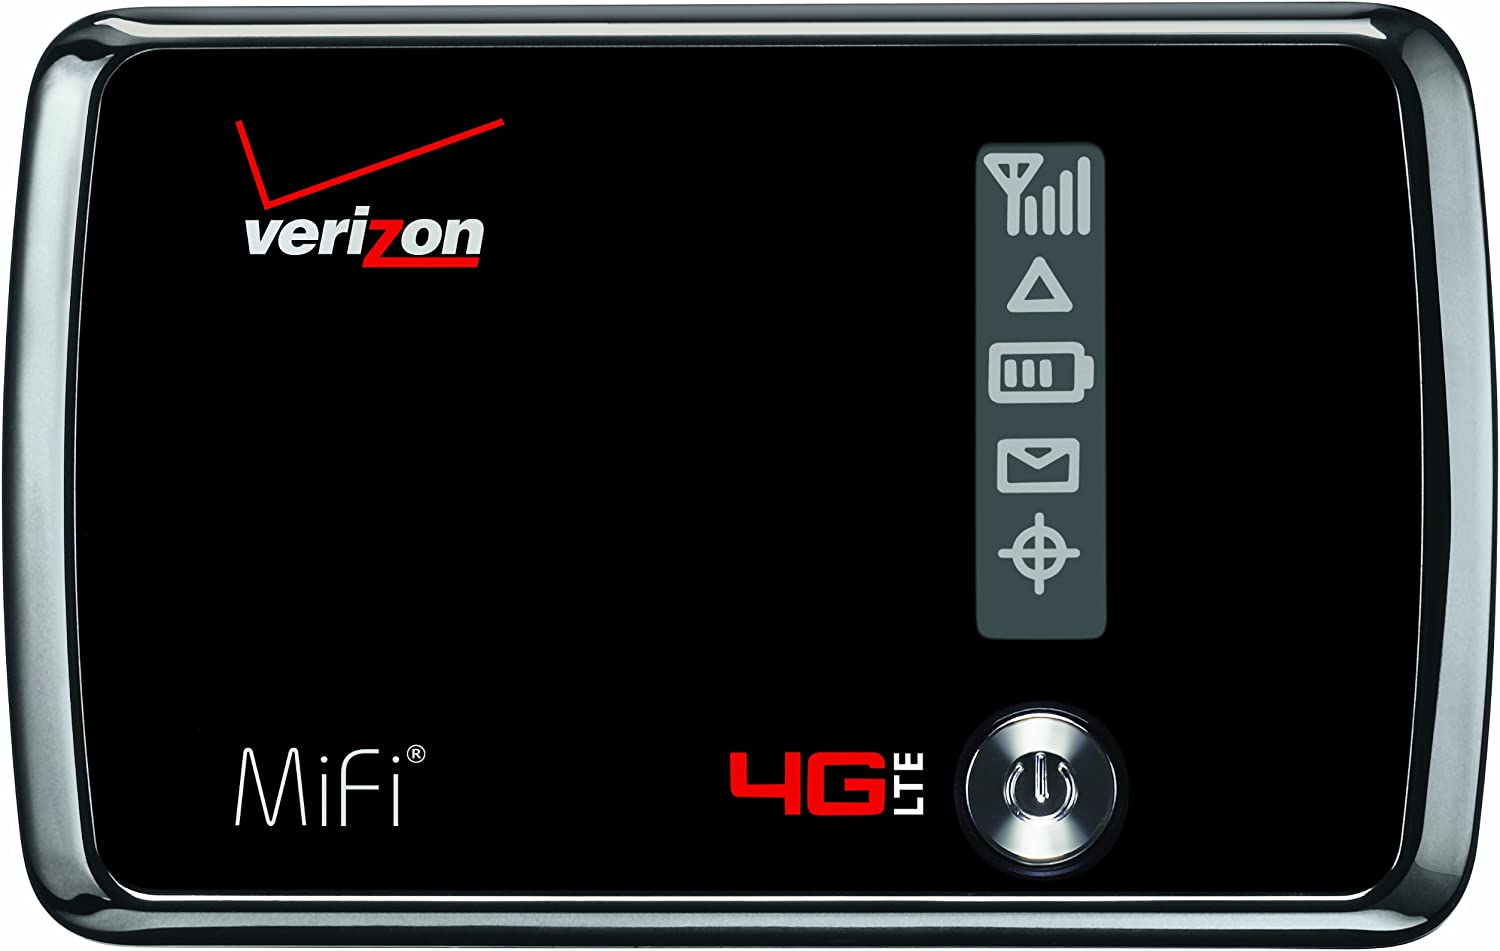 B004X6ON82 Verizon MiFi 4510L Jetpack 4G LTE Mobile Hotspot (Verizon Wireless) 71Xj4E0yrkL.SL1500_